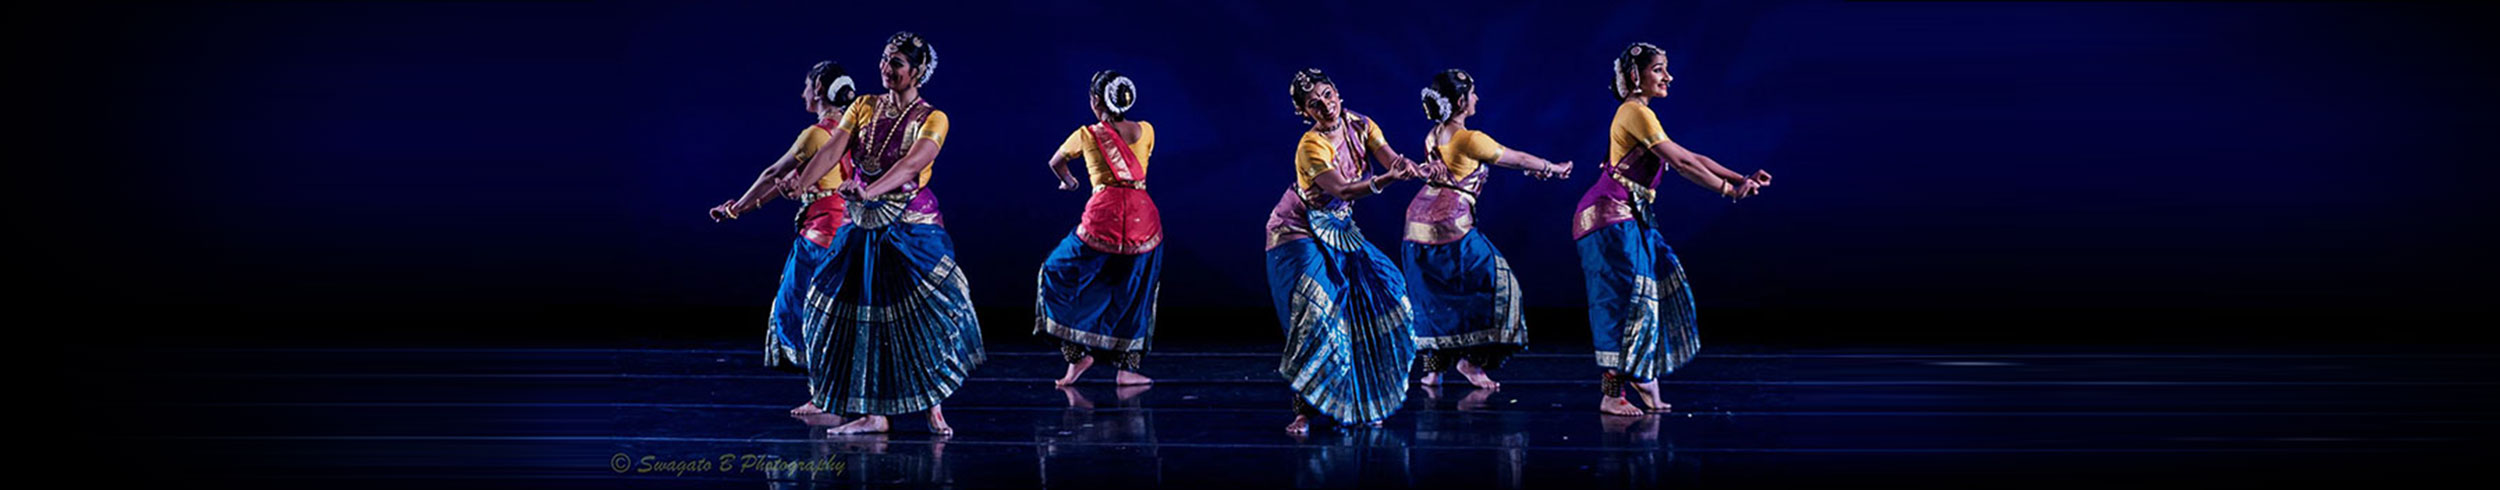 6 women dancing in a circle with colorful dresses